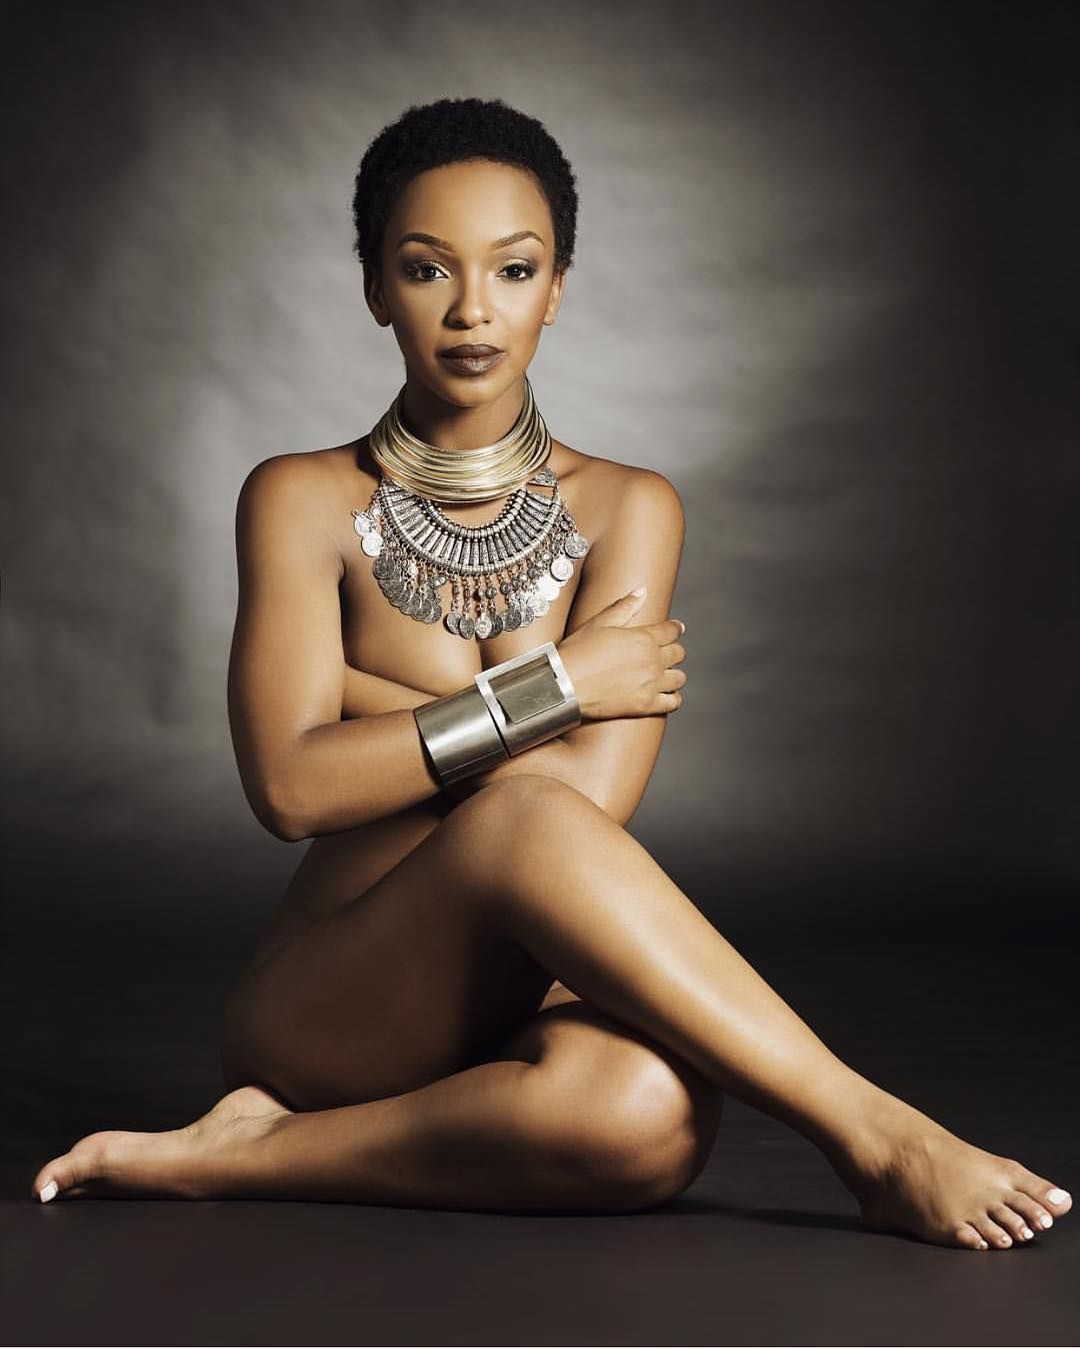 Oh i love a zulu girl sisters nandimngoma oh i love a zulu girl sisters nandimngoma ccuart Image collections